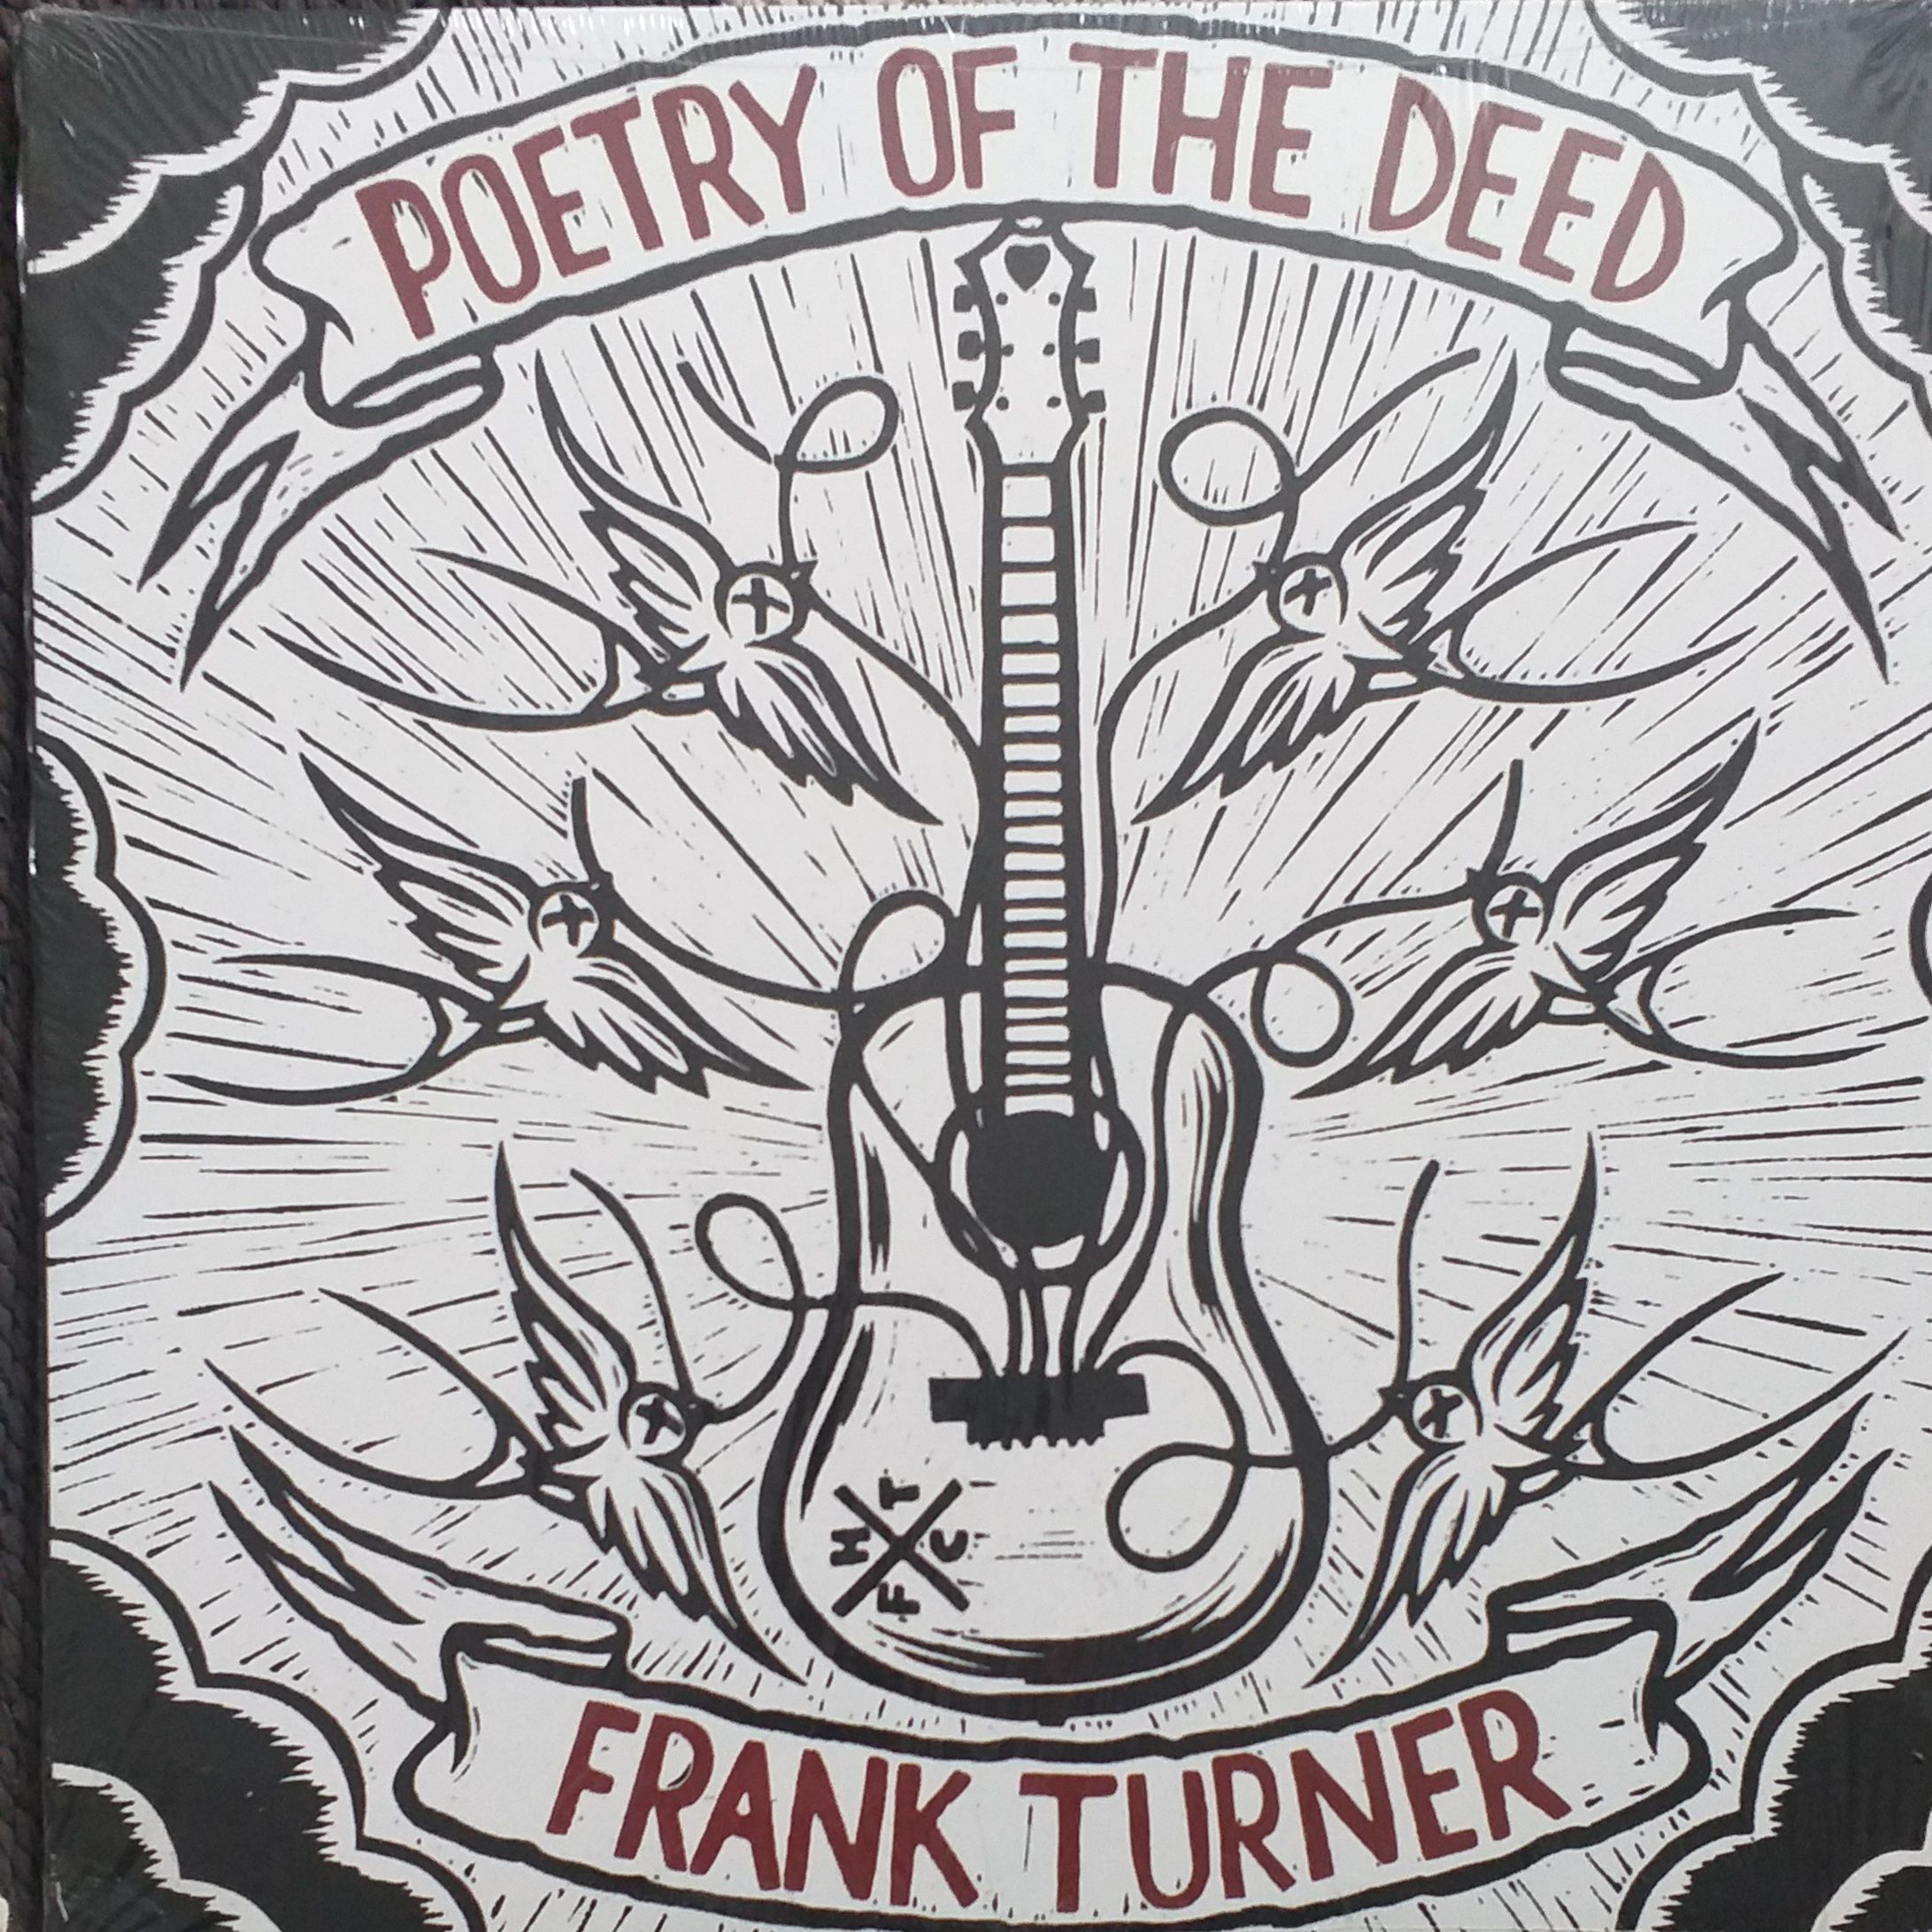 Frank Turner Poetry of the deed LP undefined